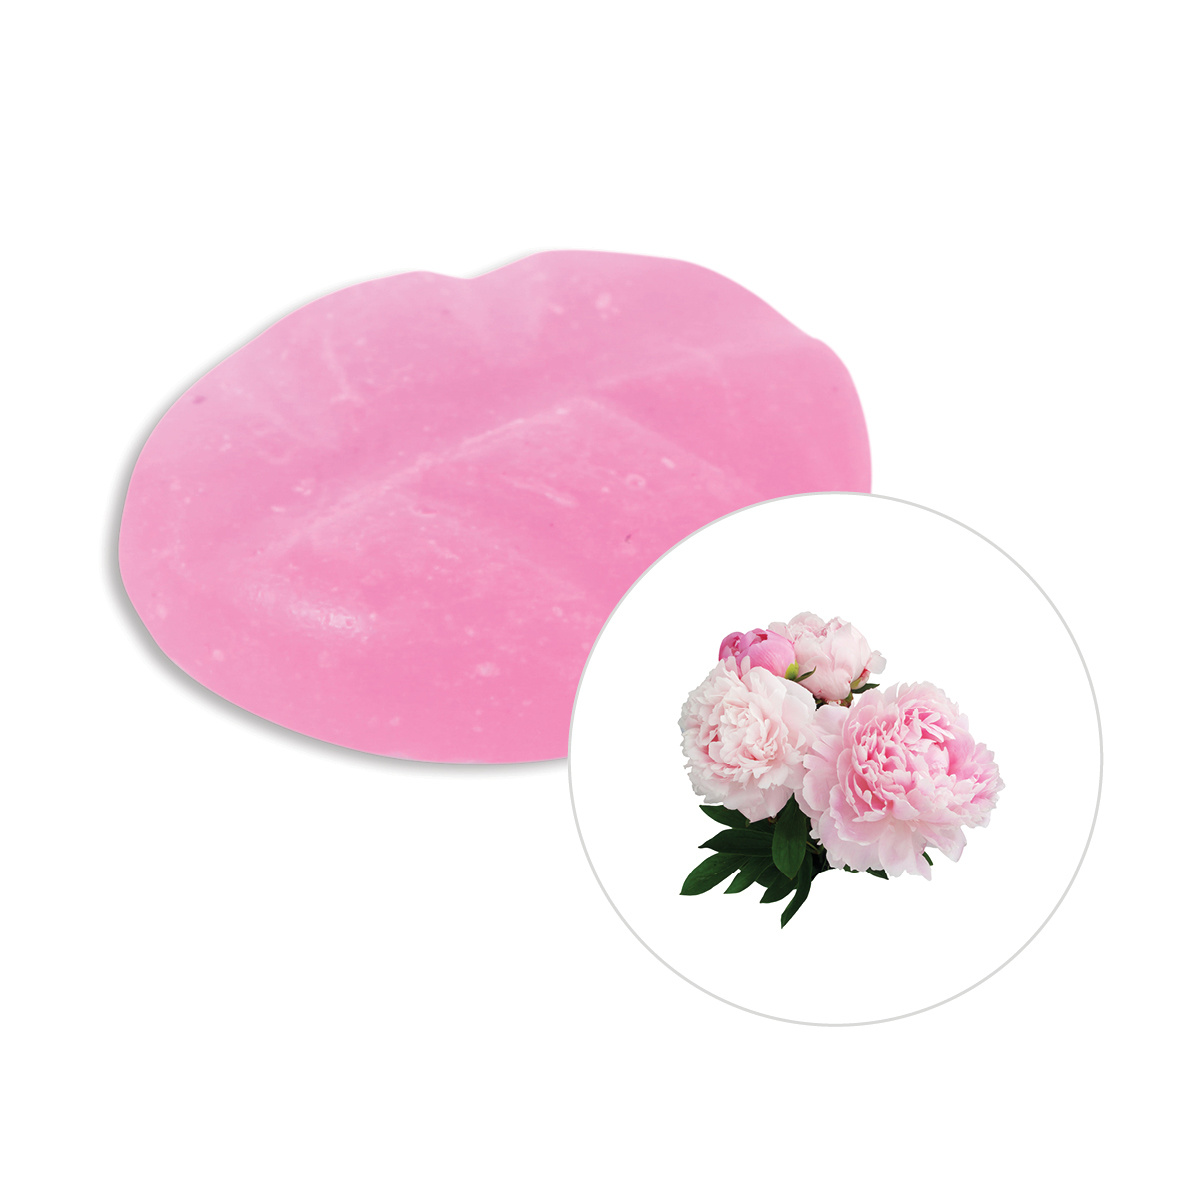 Peony fragrance chips ScentChips